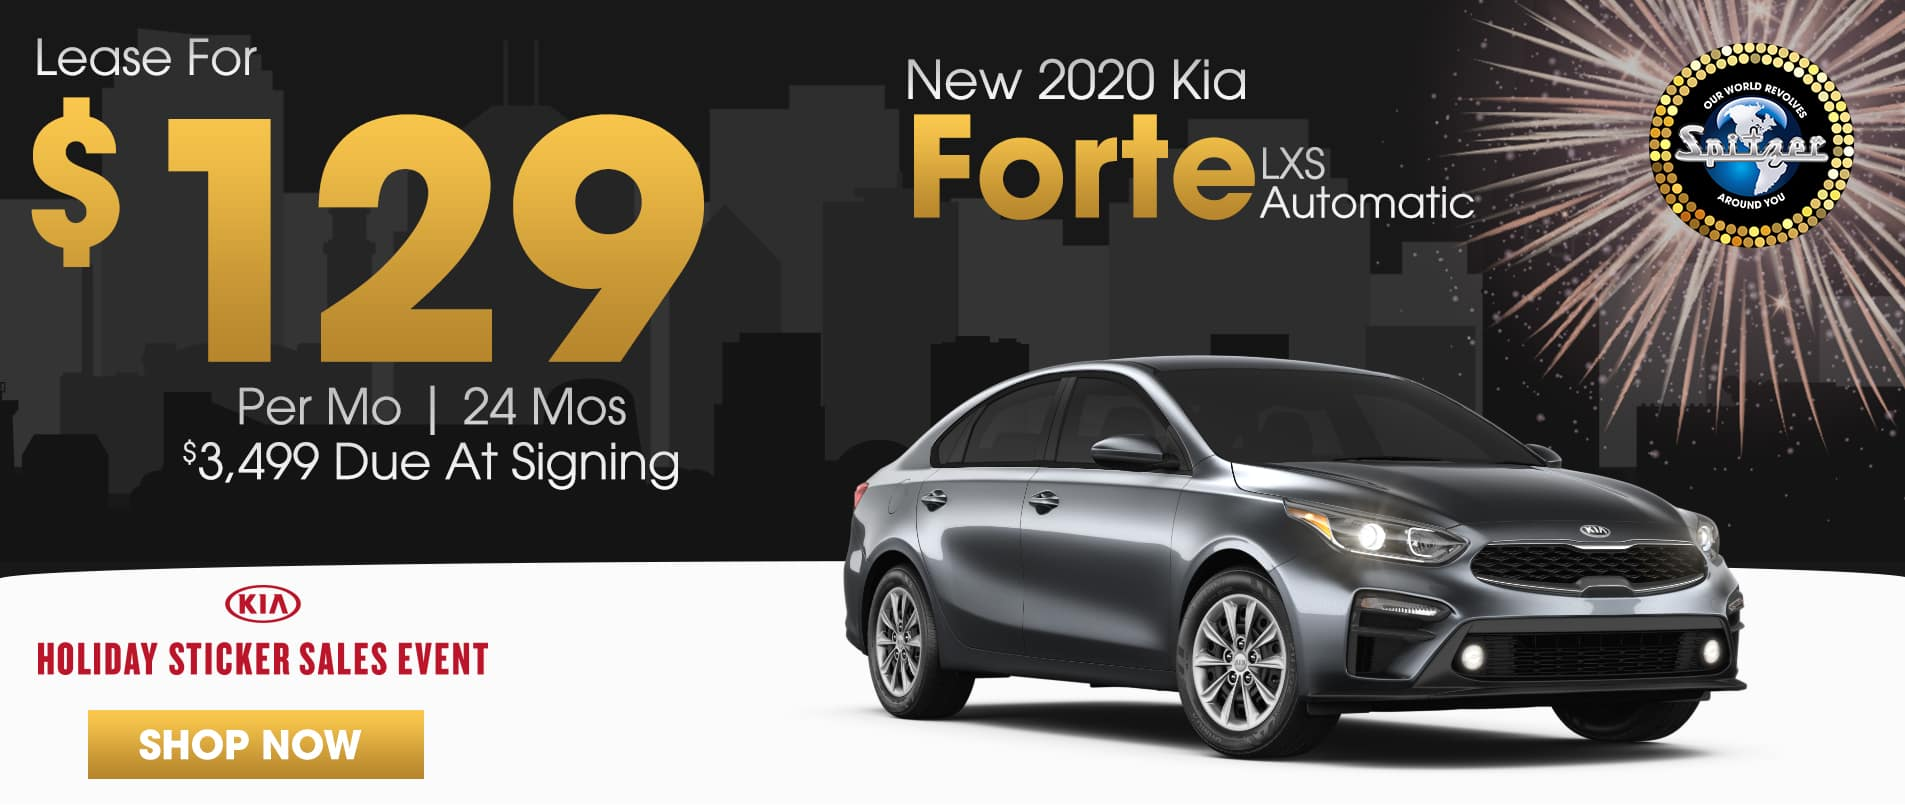 Forte | Lease for $129 per mo